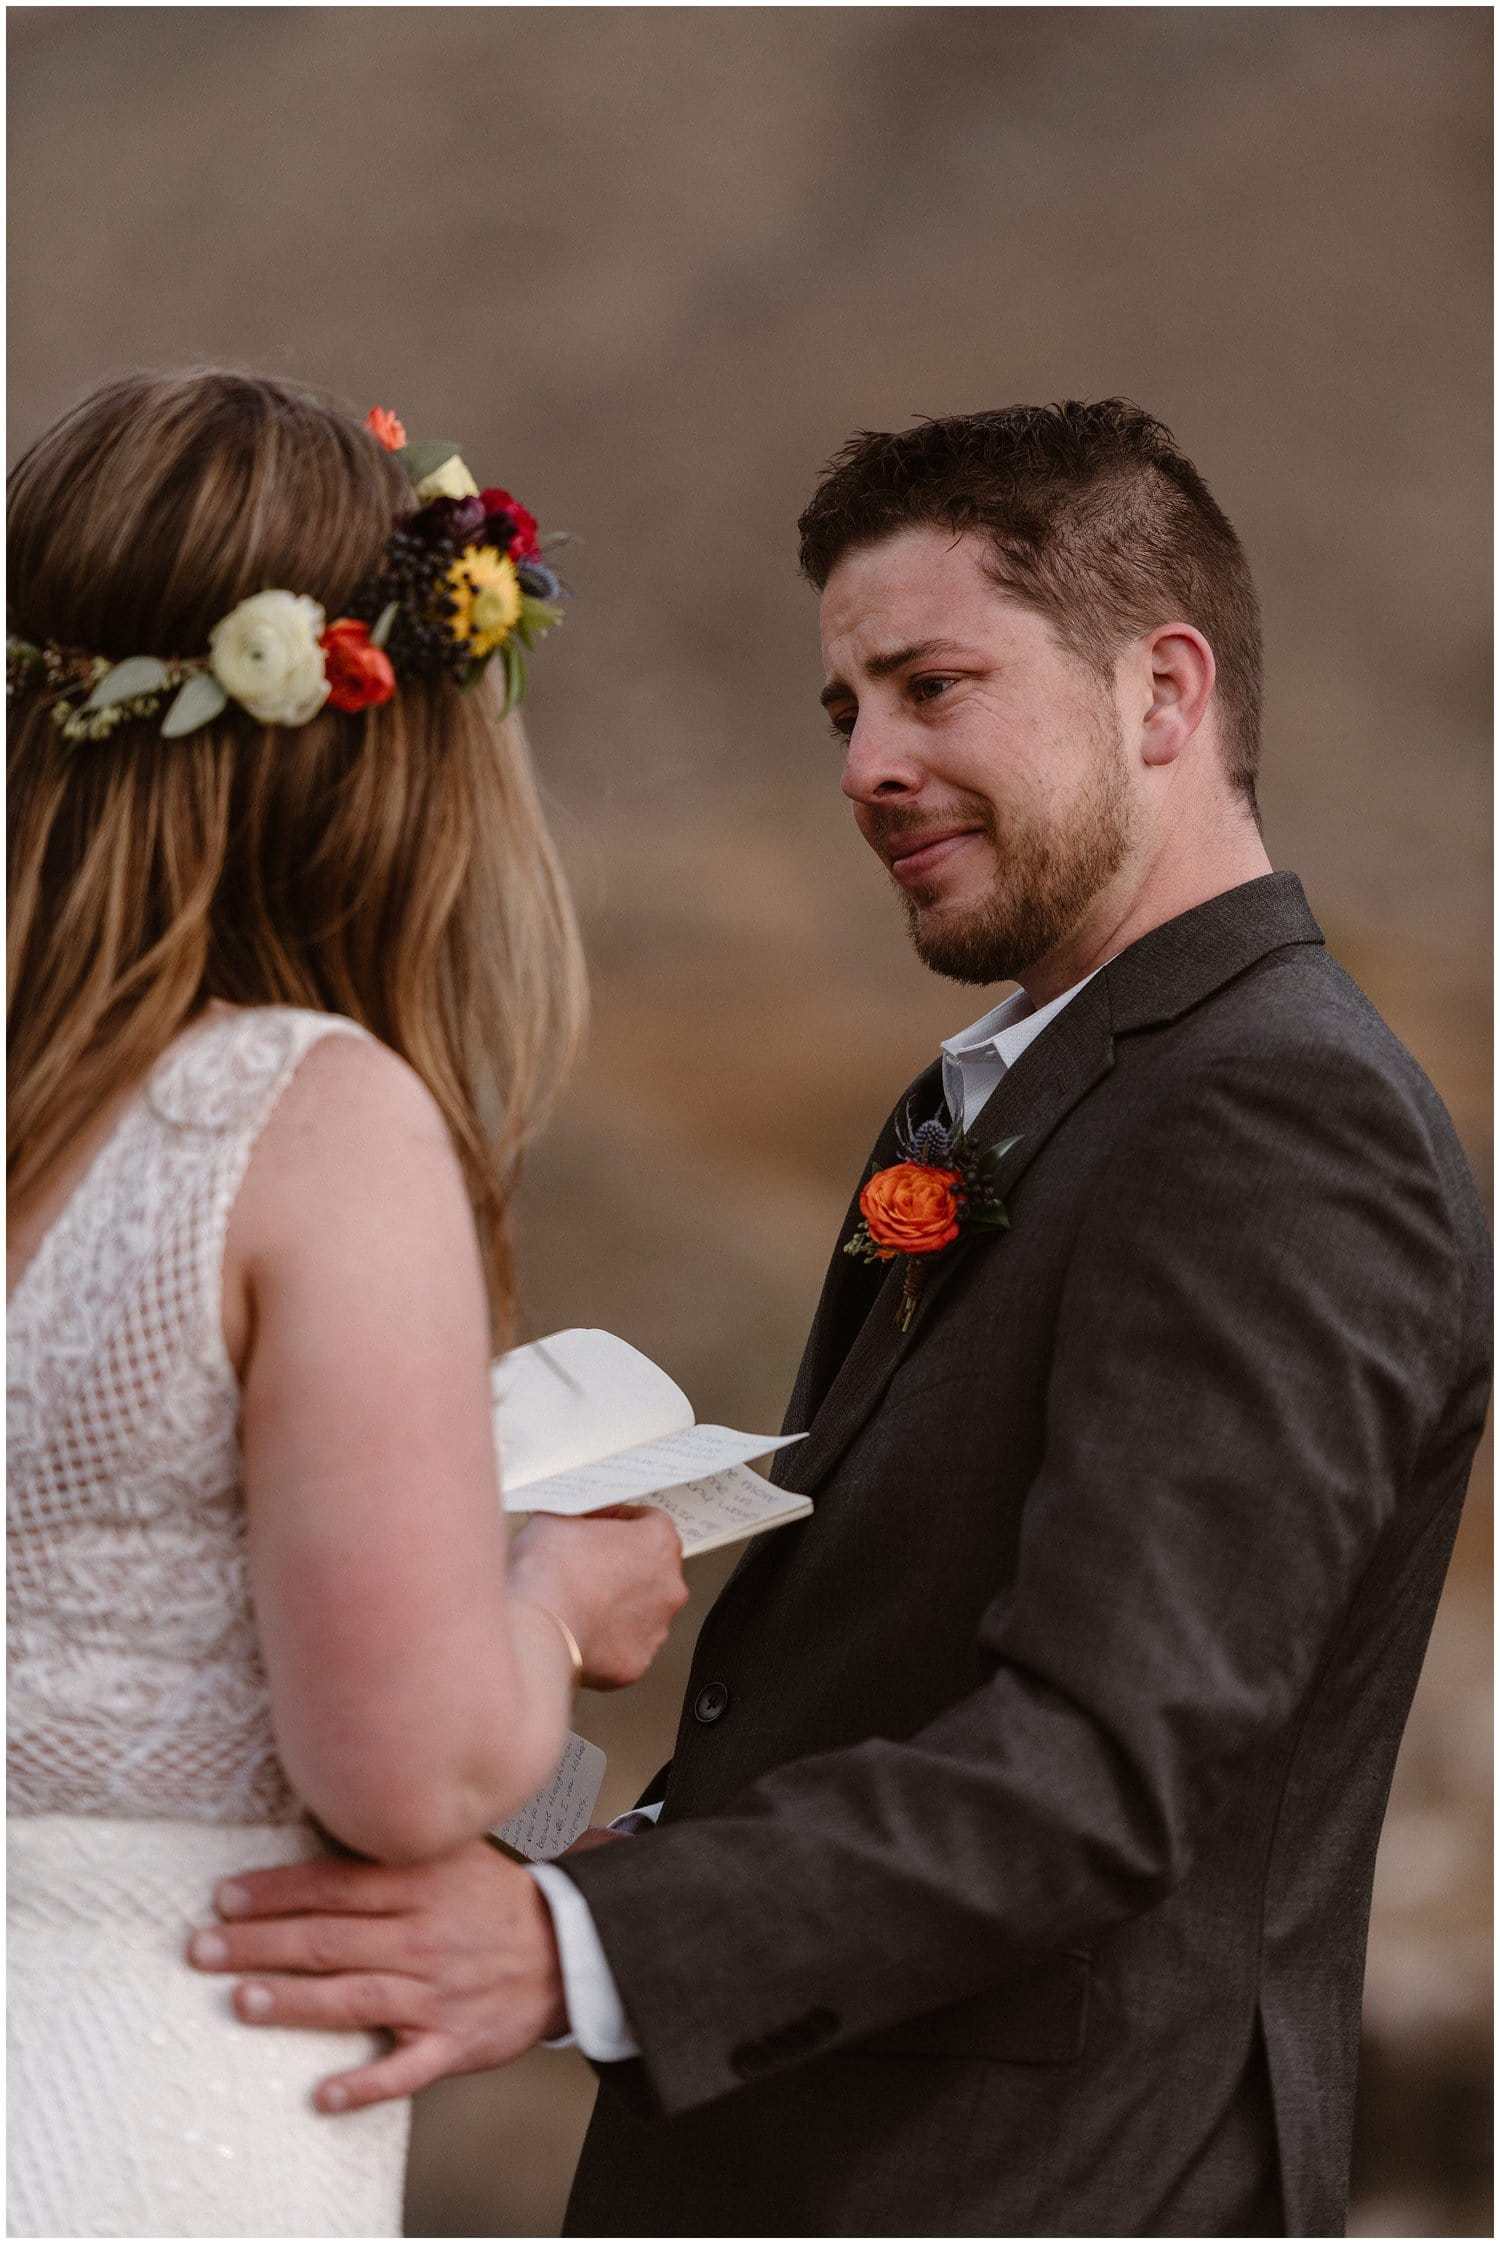 A groom is almost in tears as he looks as his bride reading her vows to him.